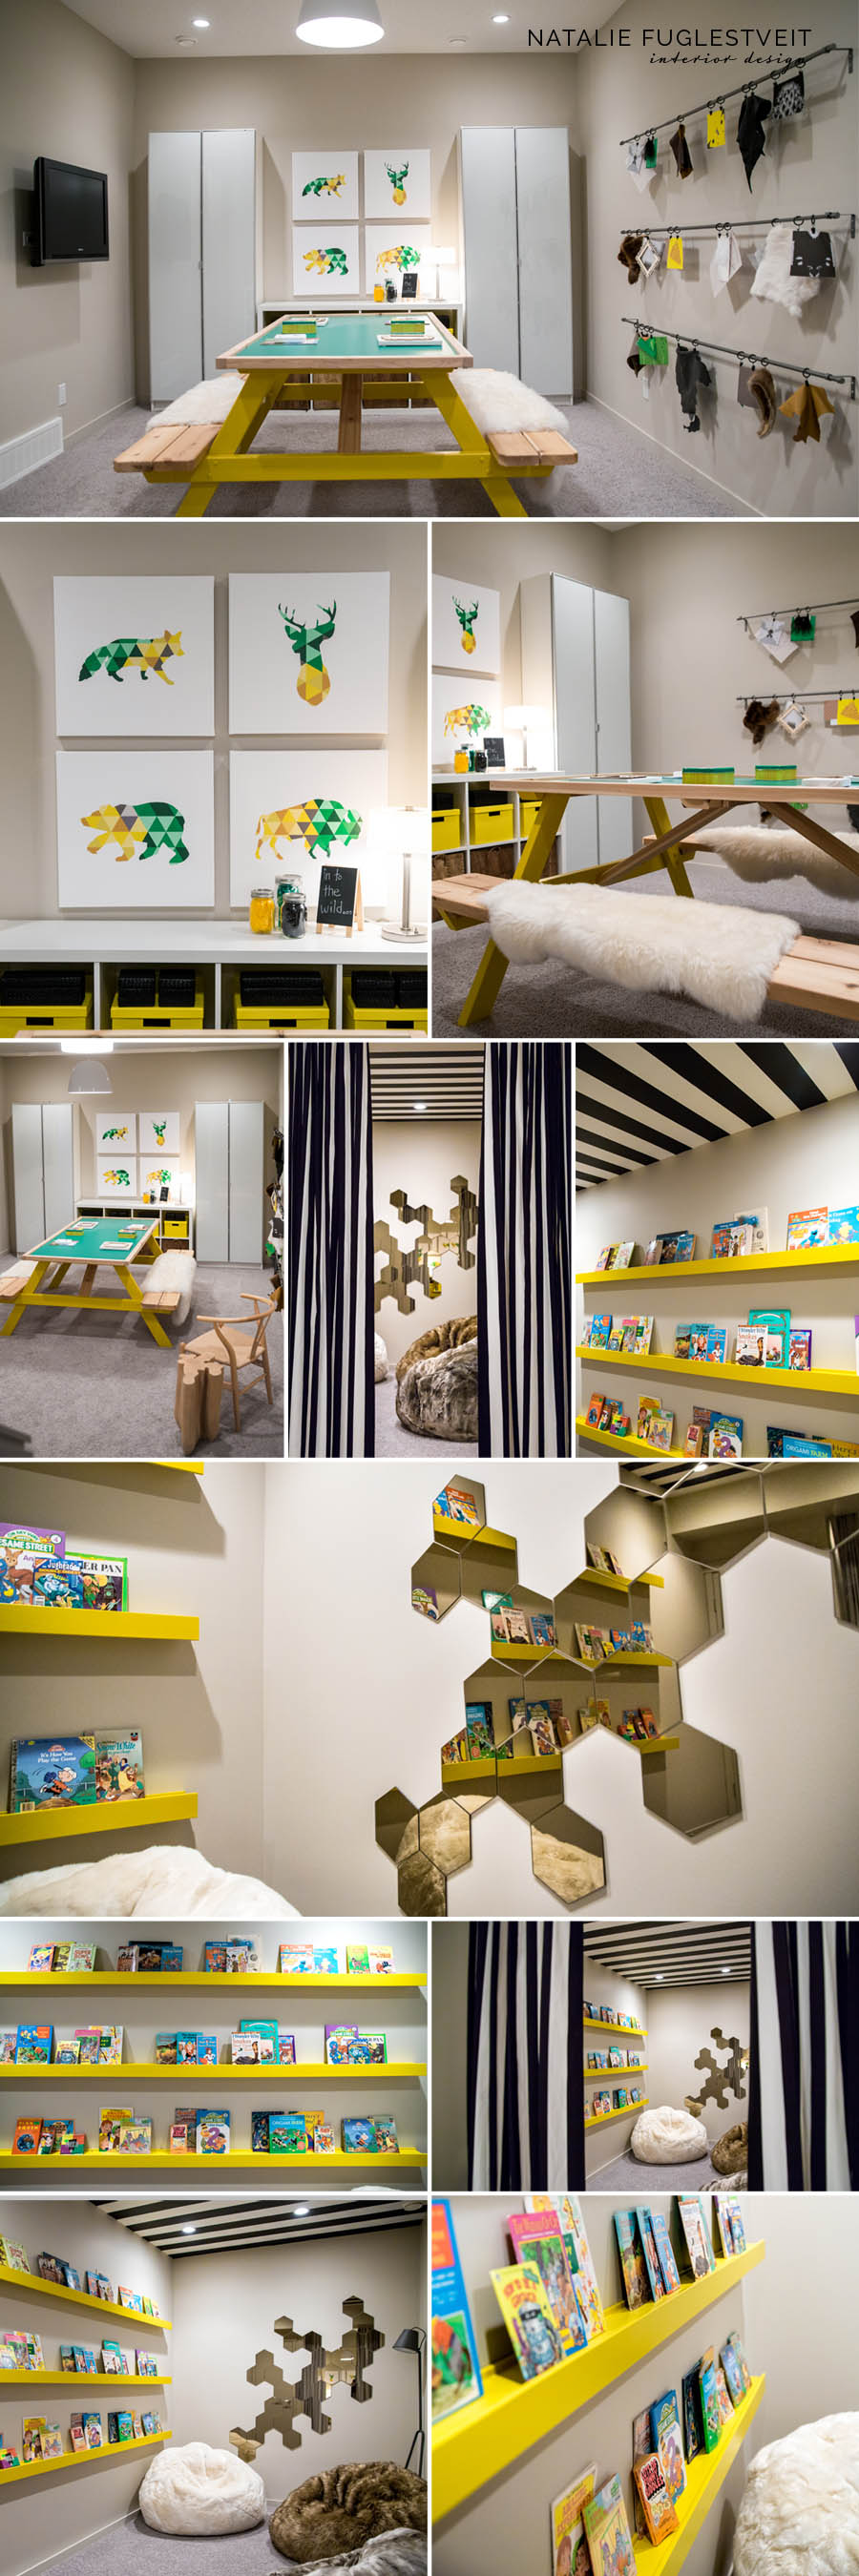 Amazing Kids Play Room in Basement by Calgary Interior Designer